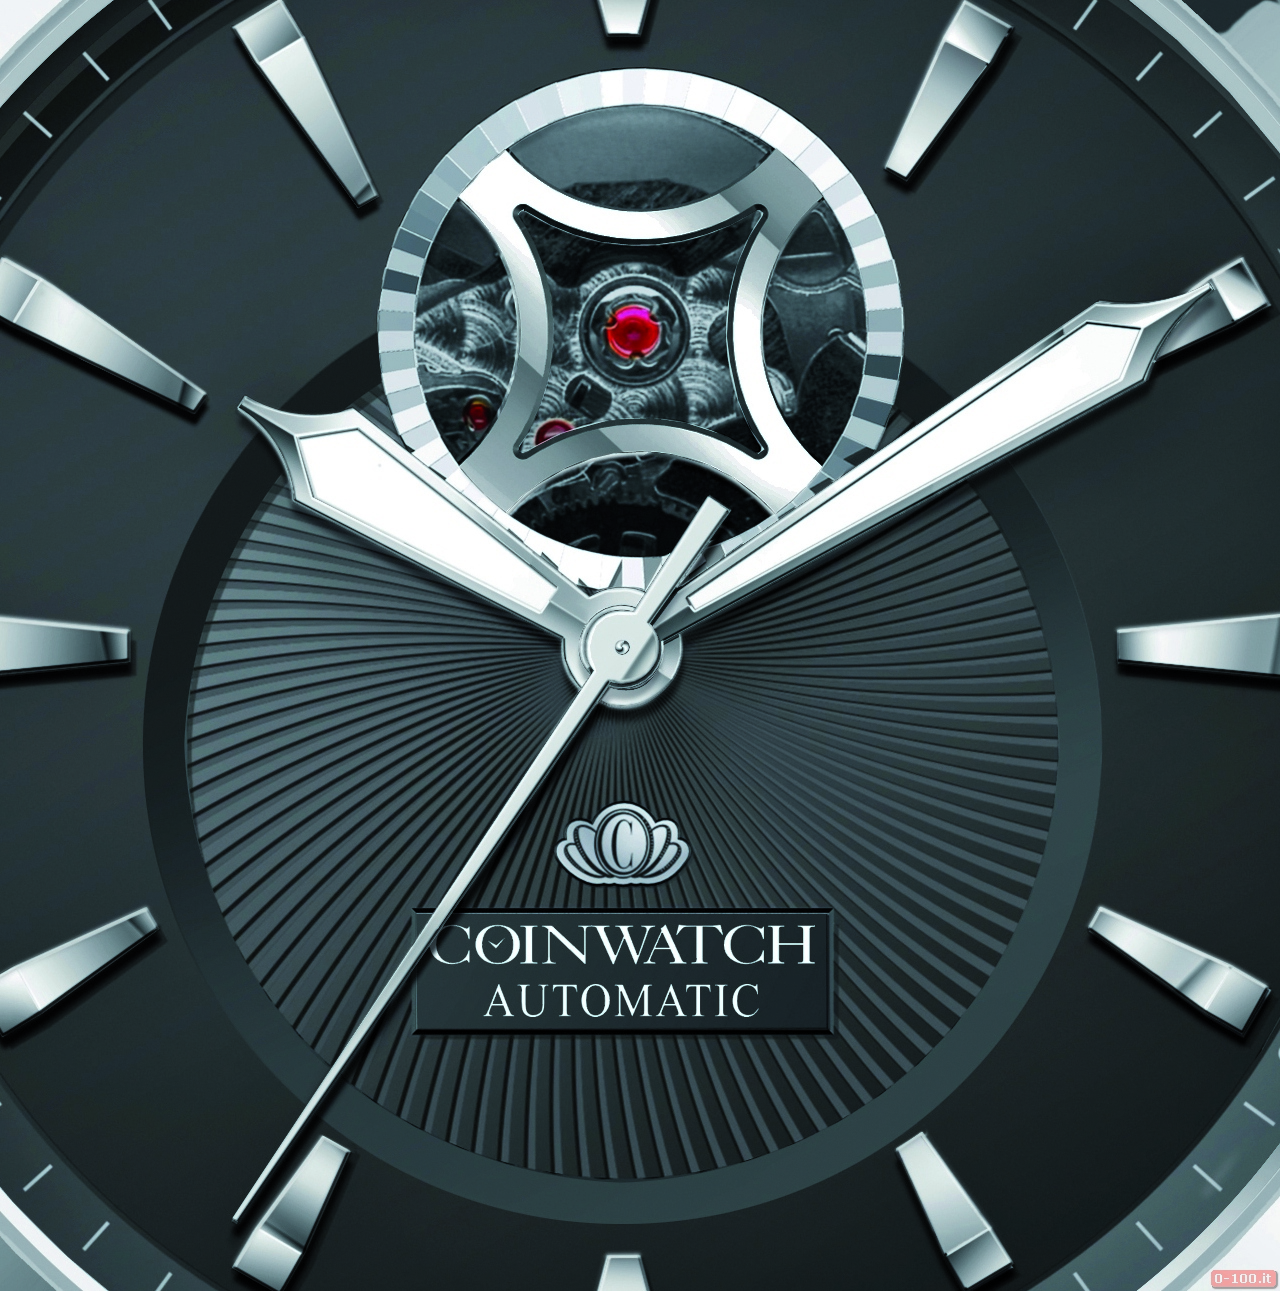 baselworld-2013-coinwatch-mark-collection-c143sbk_0-100 2